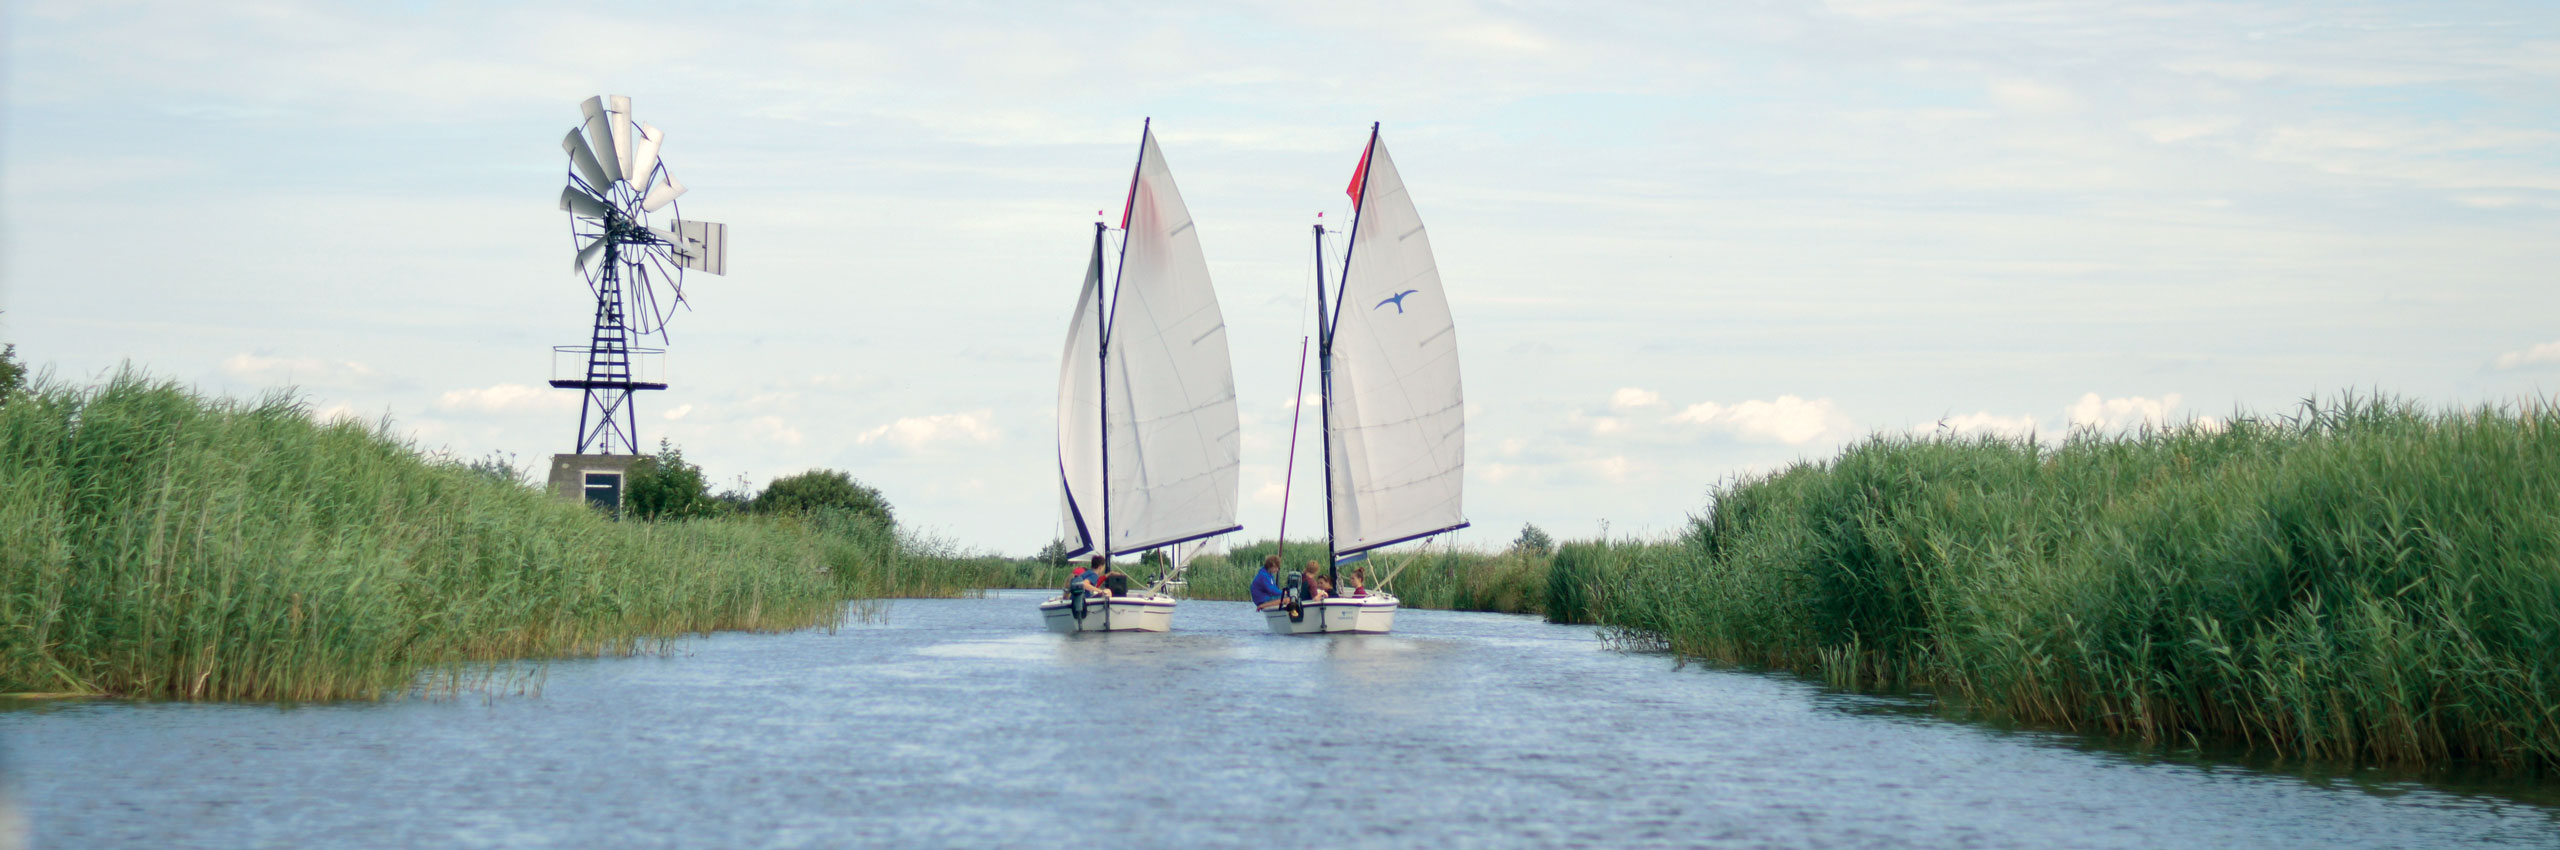 2016 Expeditie Friesland Nivon Watersport